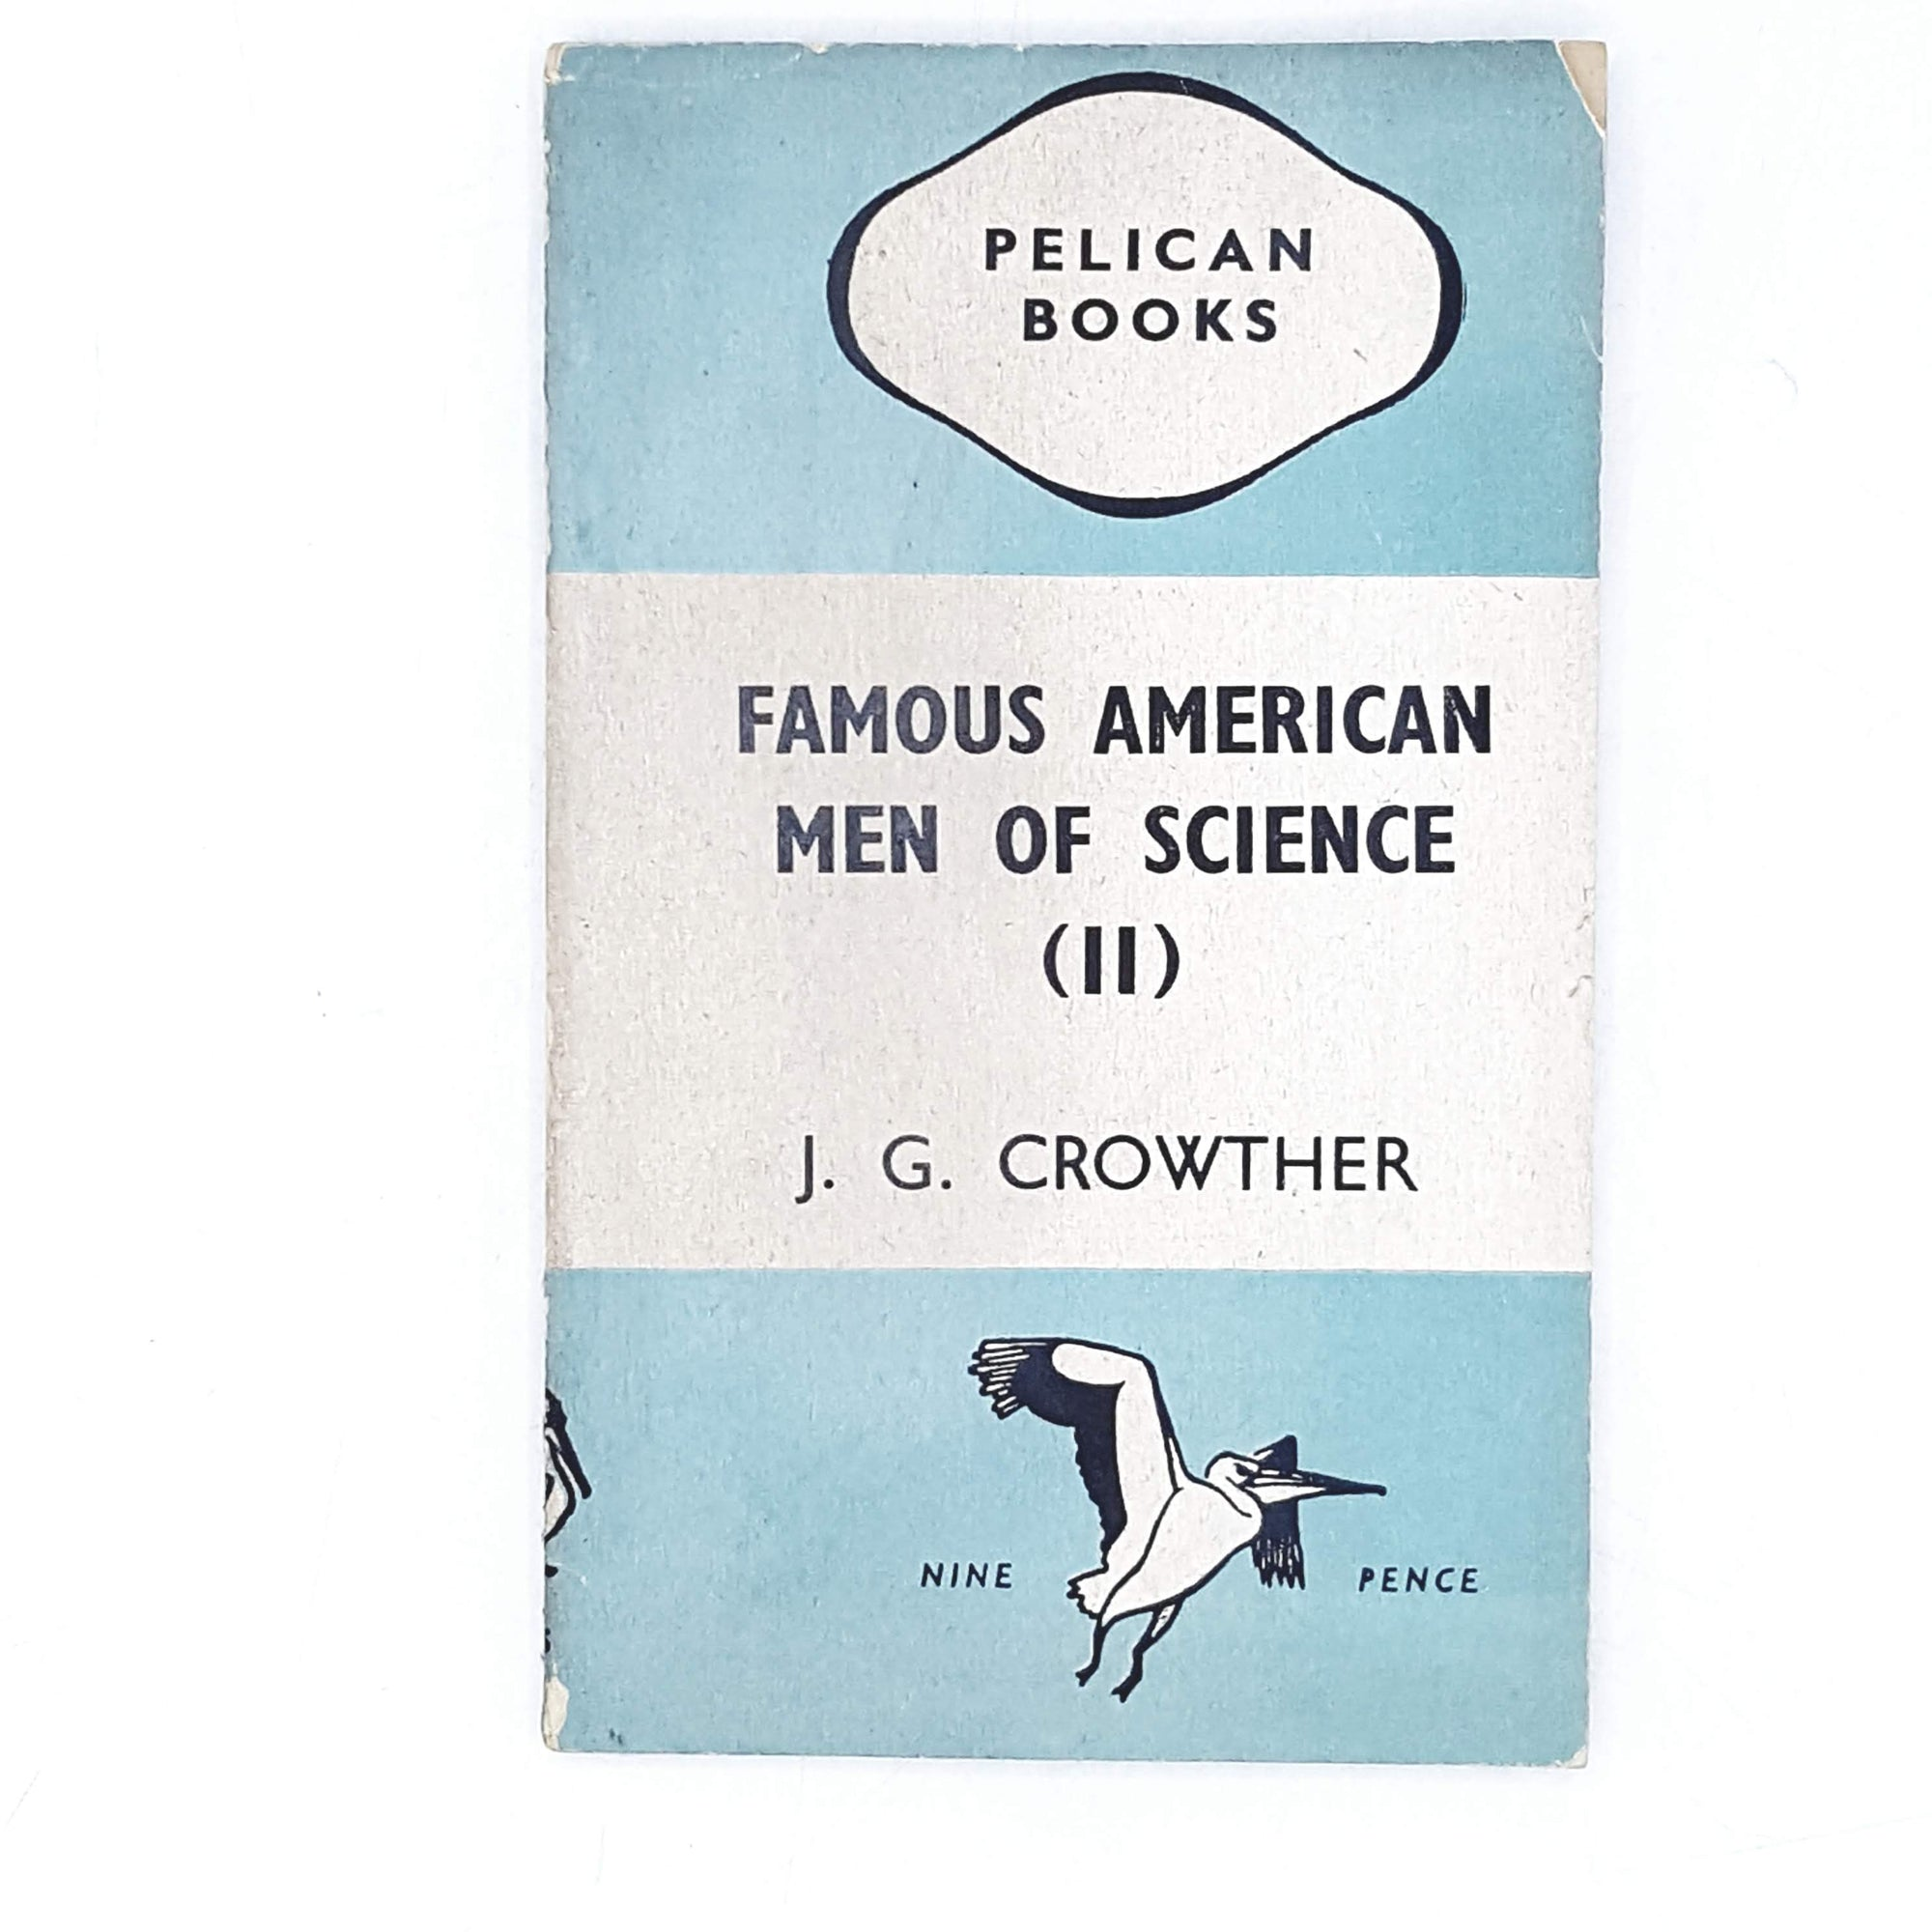 Vintage Pelican: Famous American Men of Science II by J. G. Crowther 1944